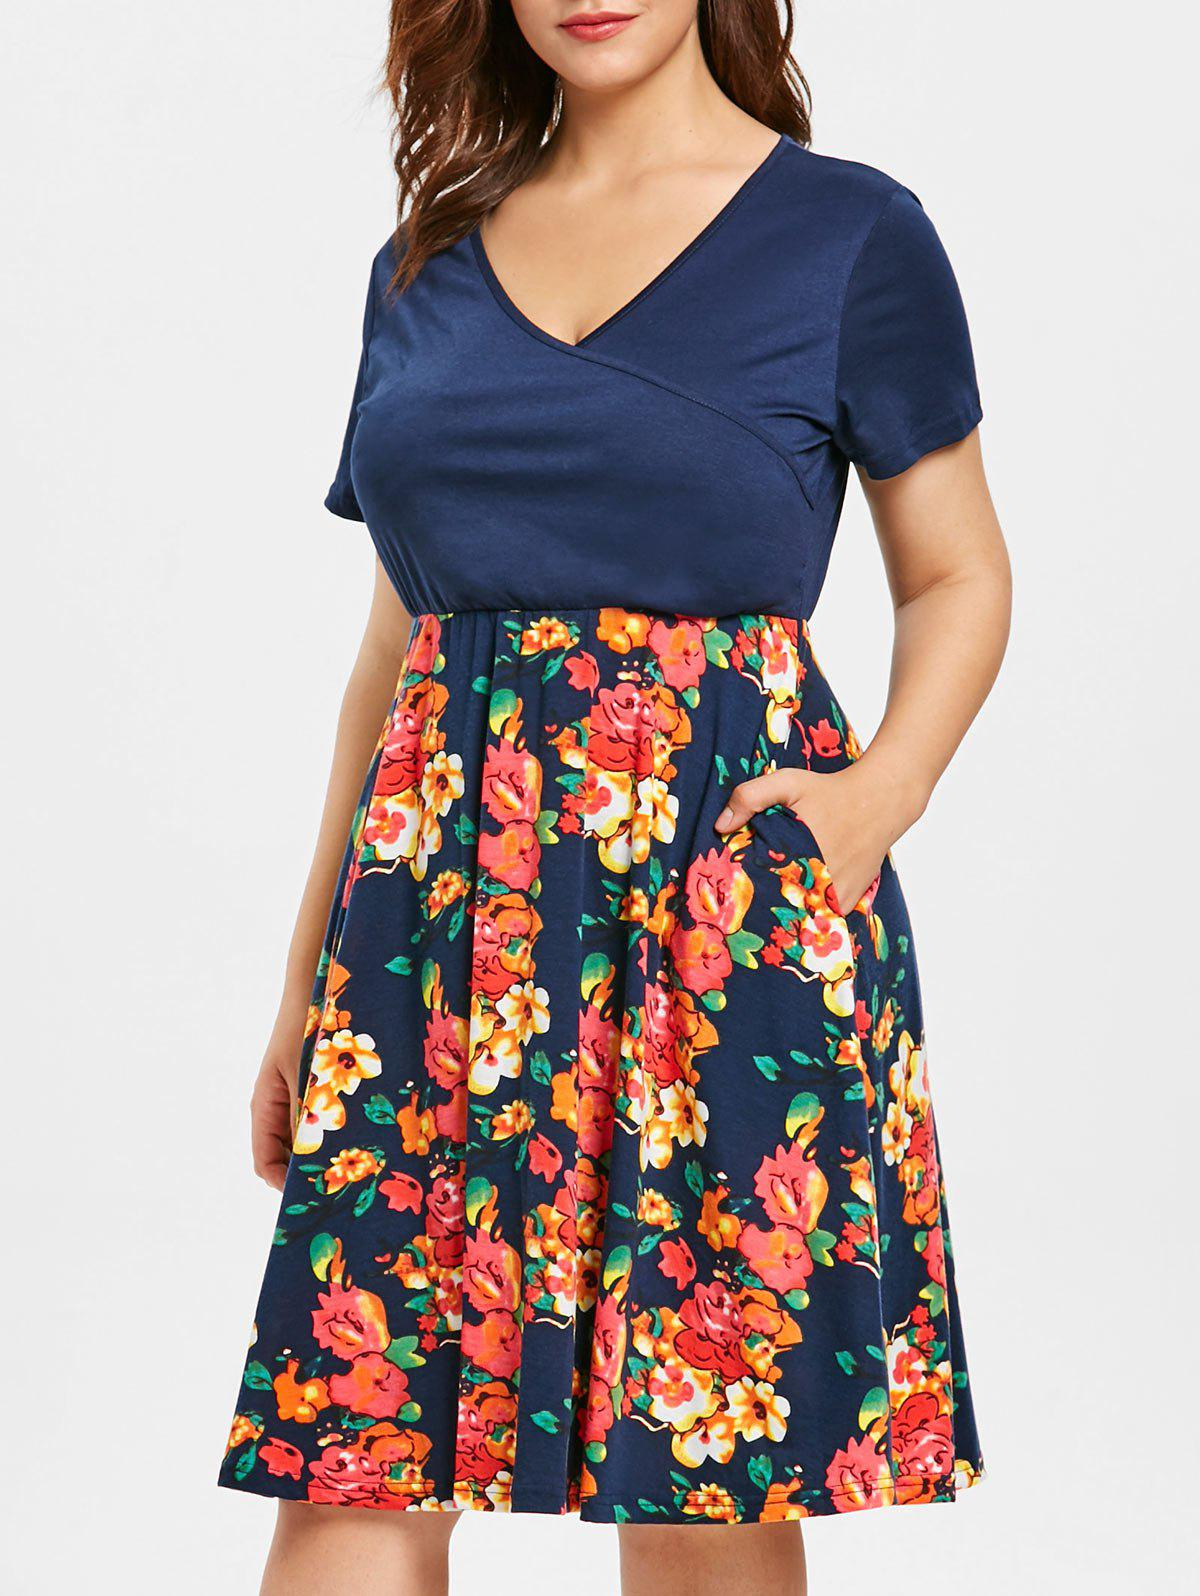 42% OFF] Floral Print Plus Size Surplice Neck Fit And Flare Dress ...